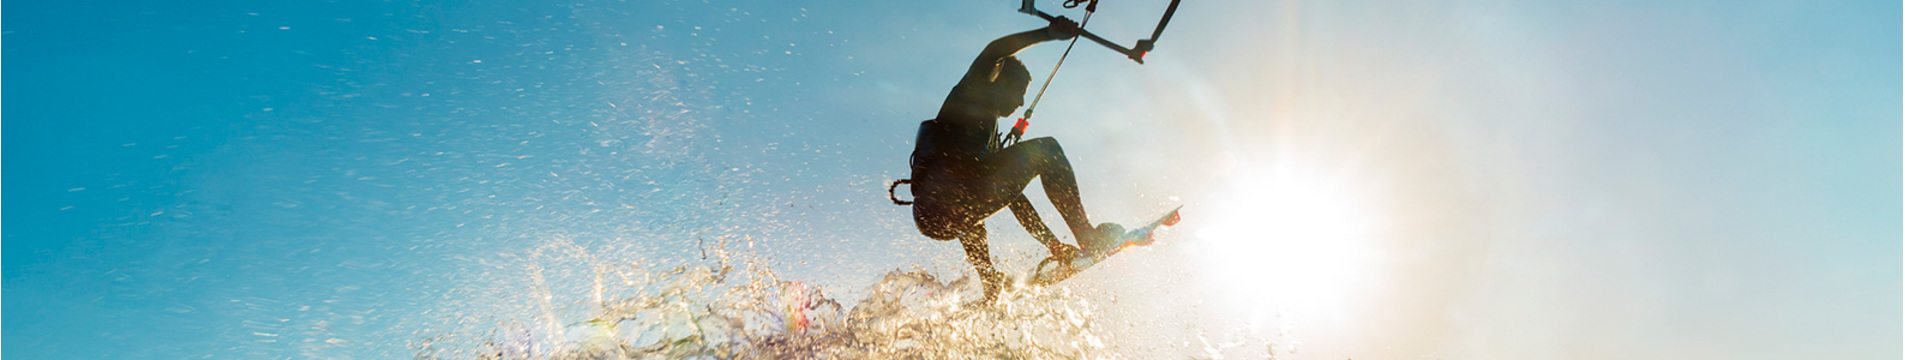 ultimate-water-sports-stag-do-guide.jpg